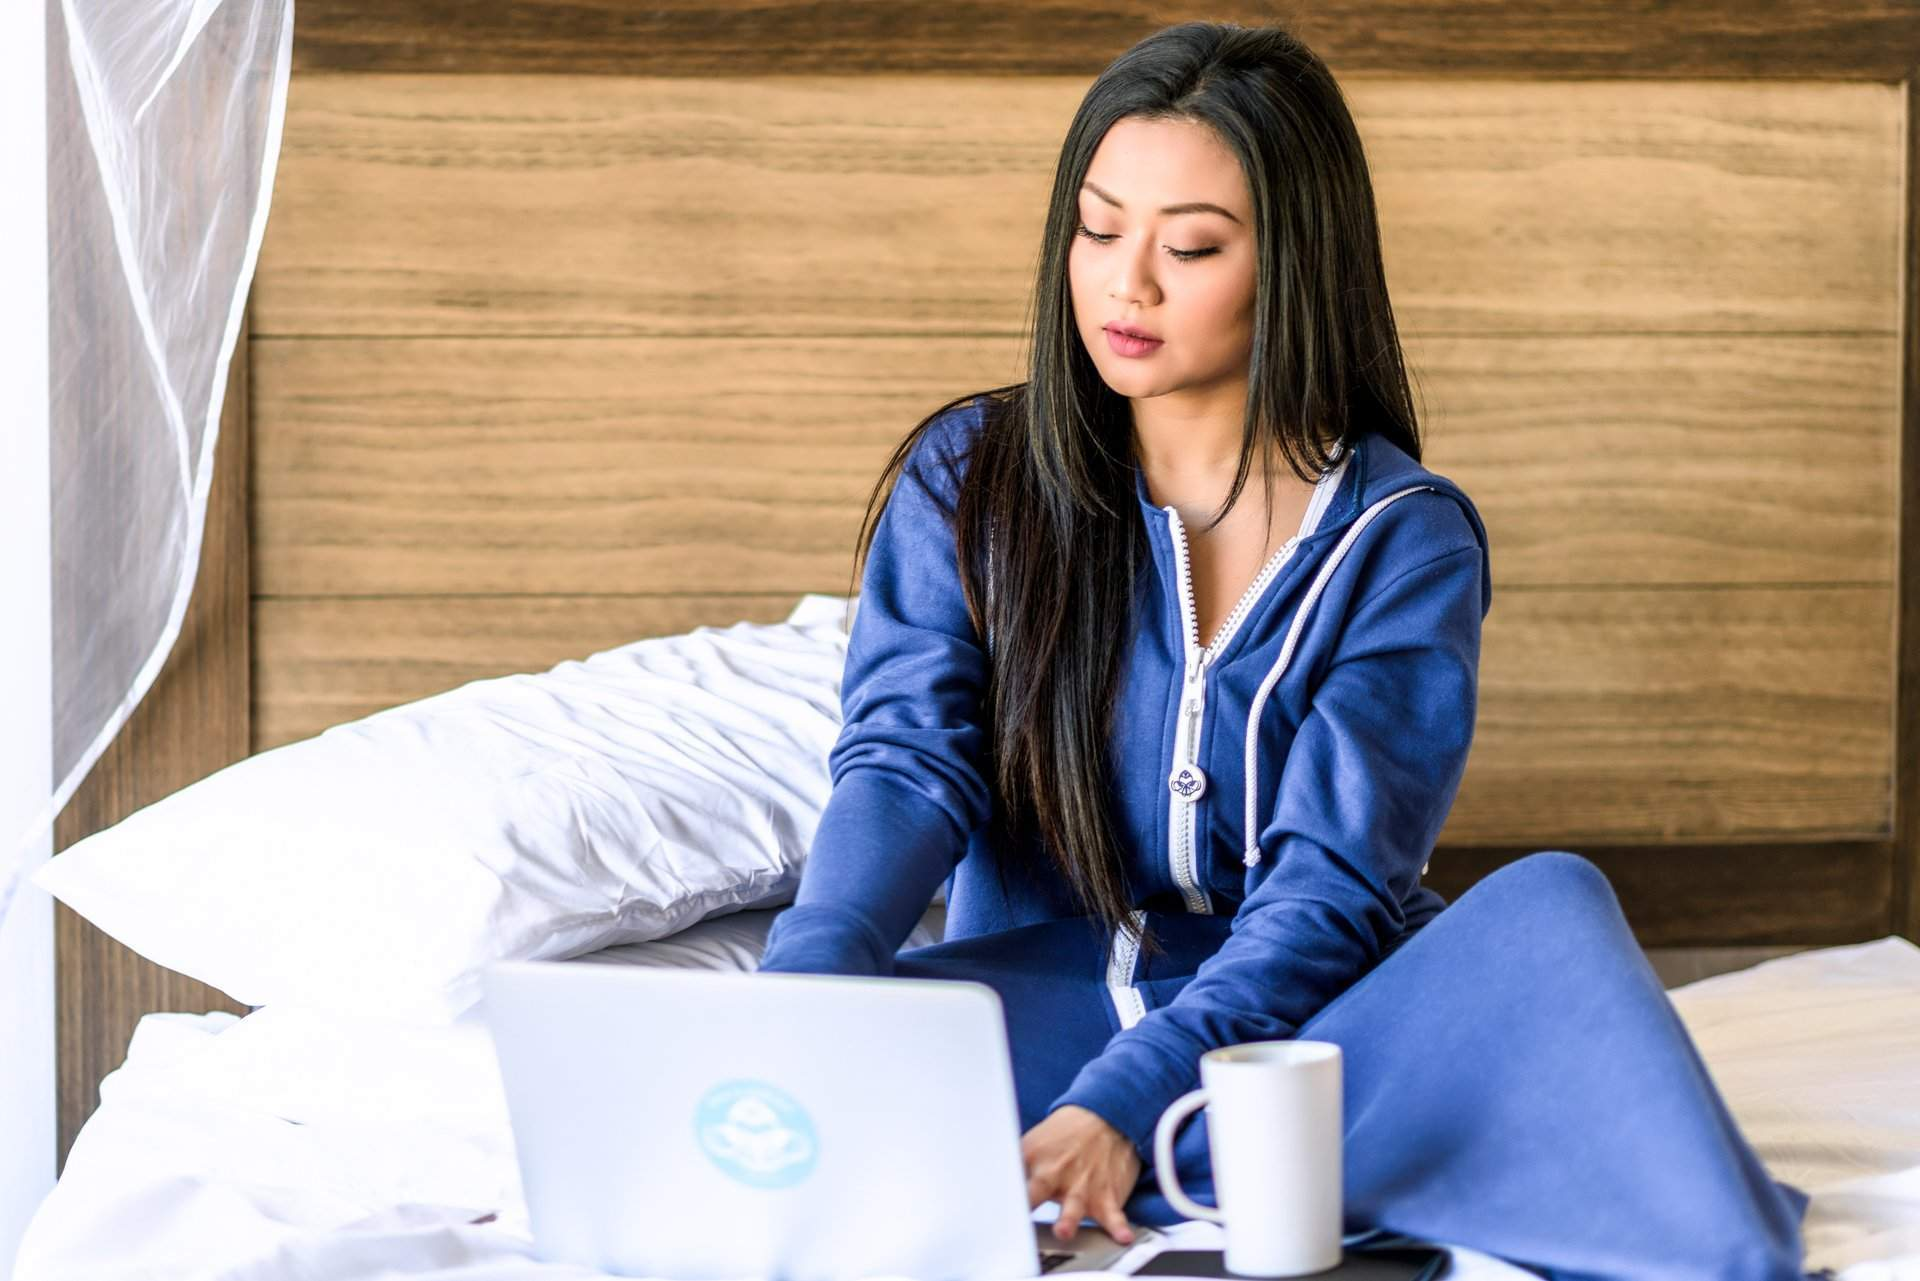 Girl on Comfy Bed Lounging with Laptop - rev'pod™ | ultra-soft travel + loungewear | #revpod